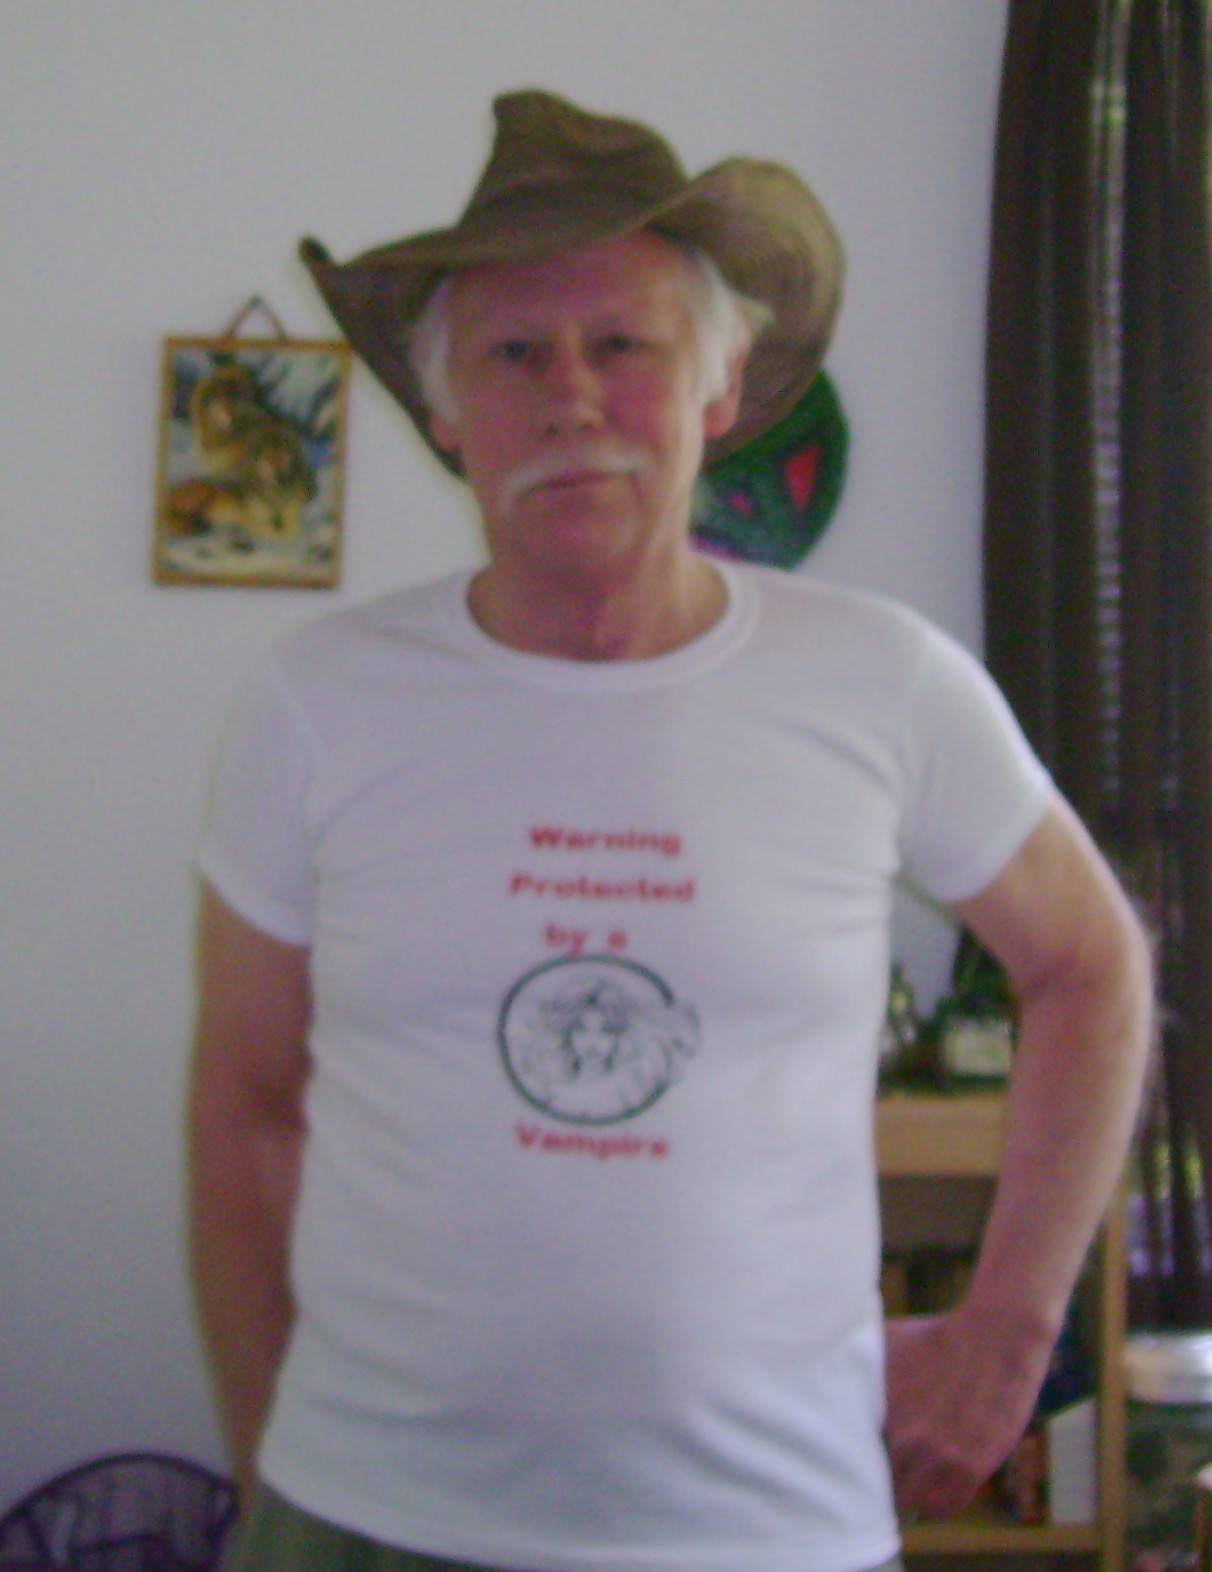 Pete in T-shirt